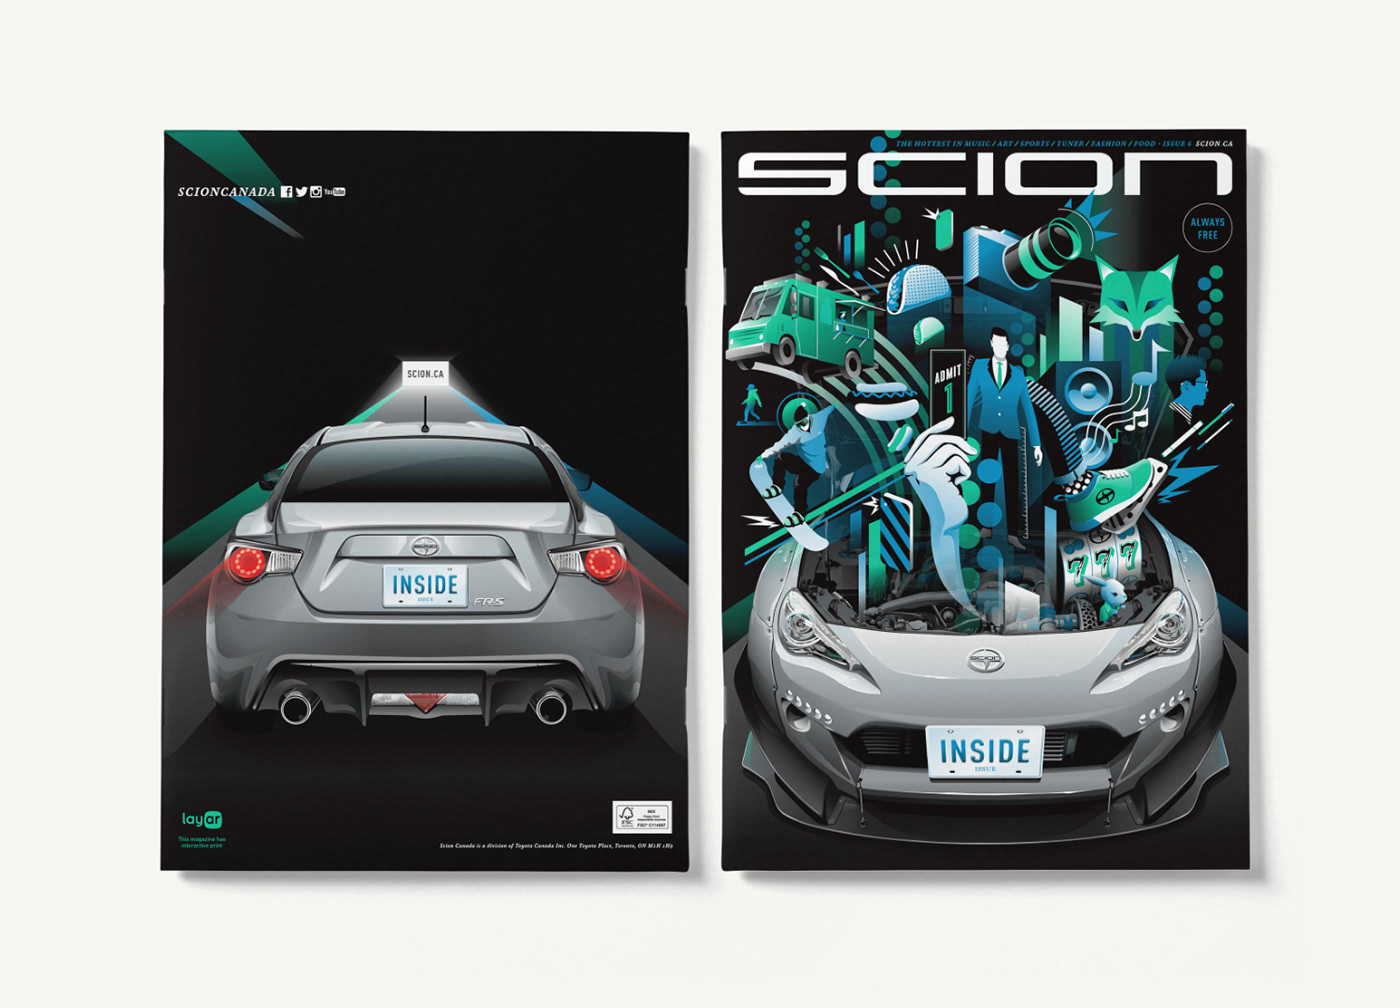 Scion Magazine - Issue #6 (Inside issue)